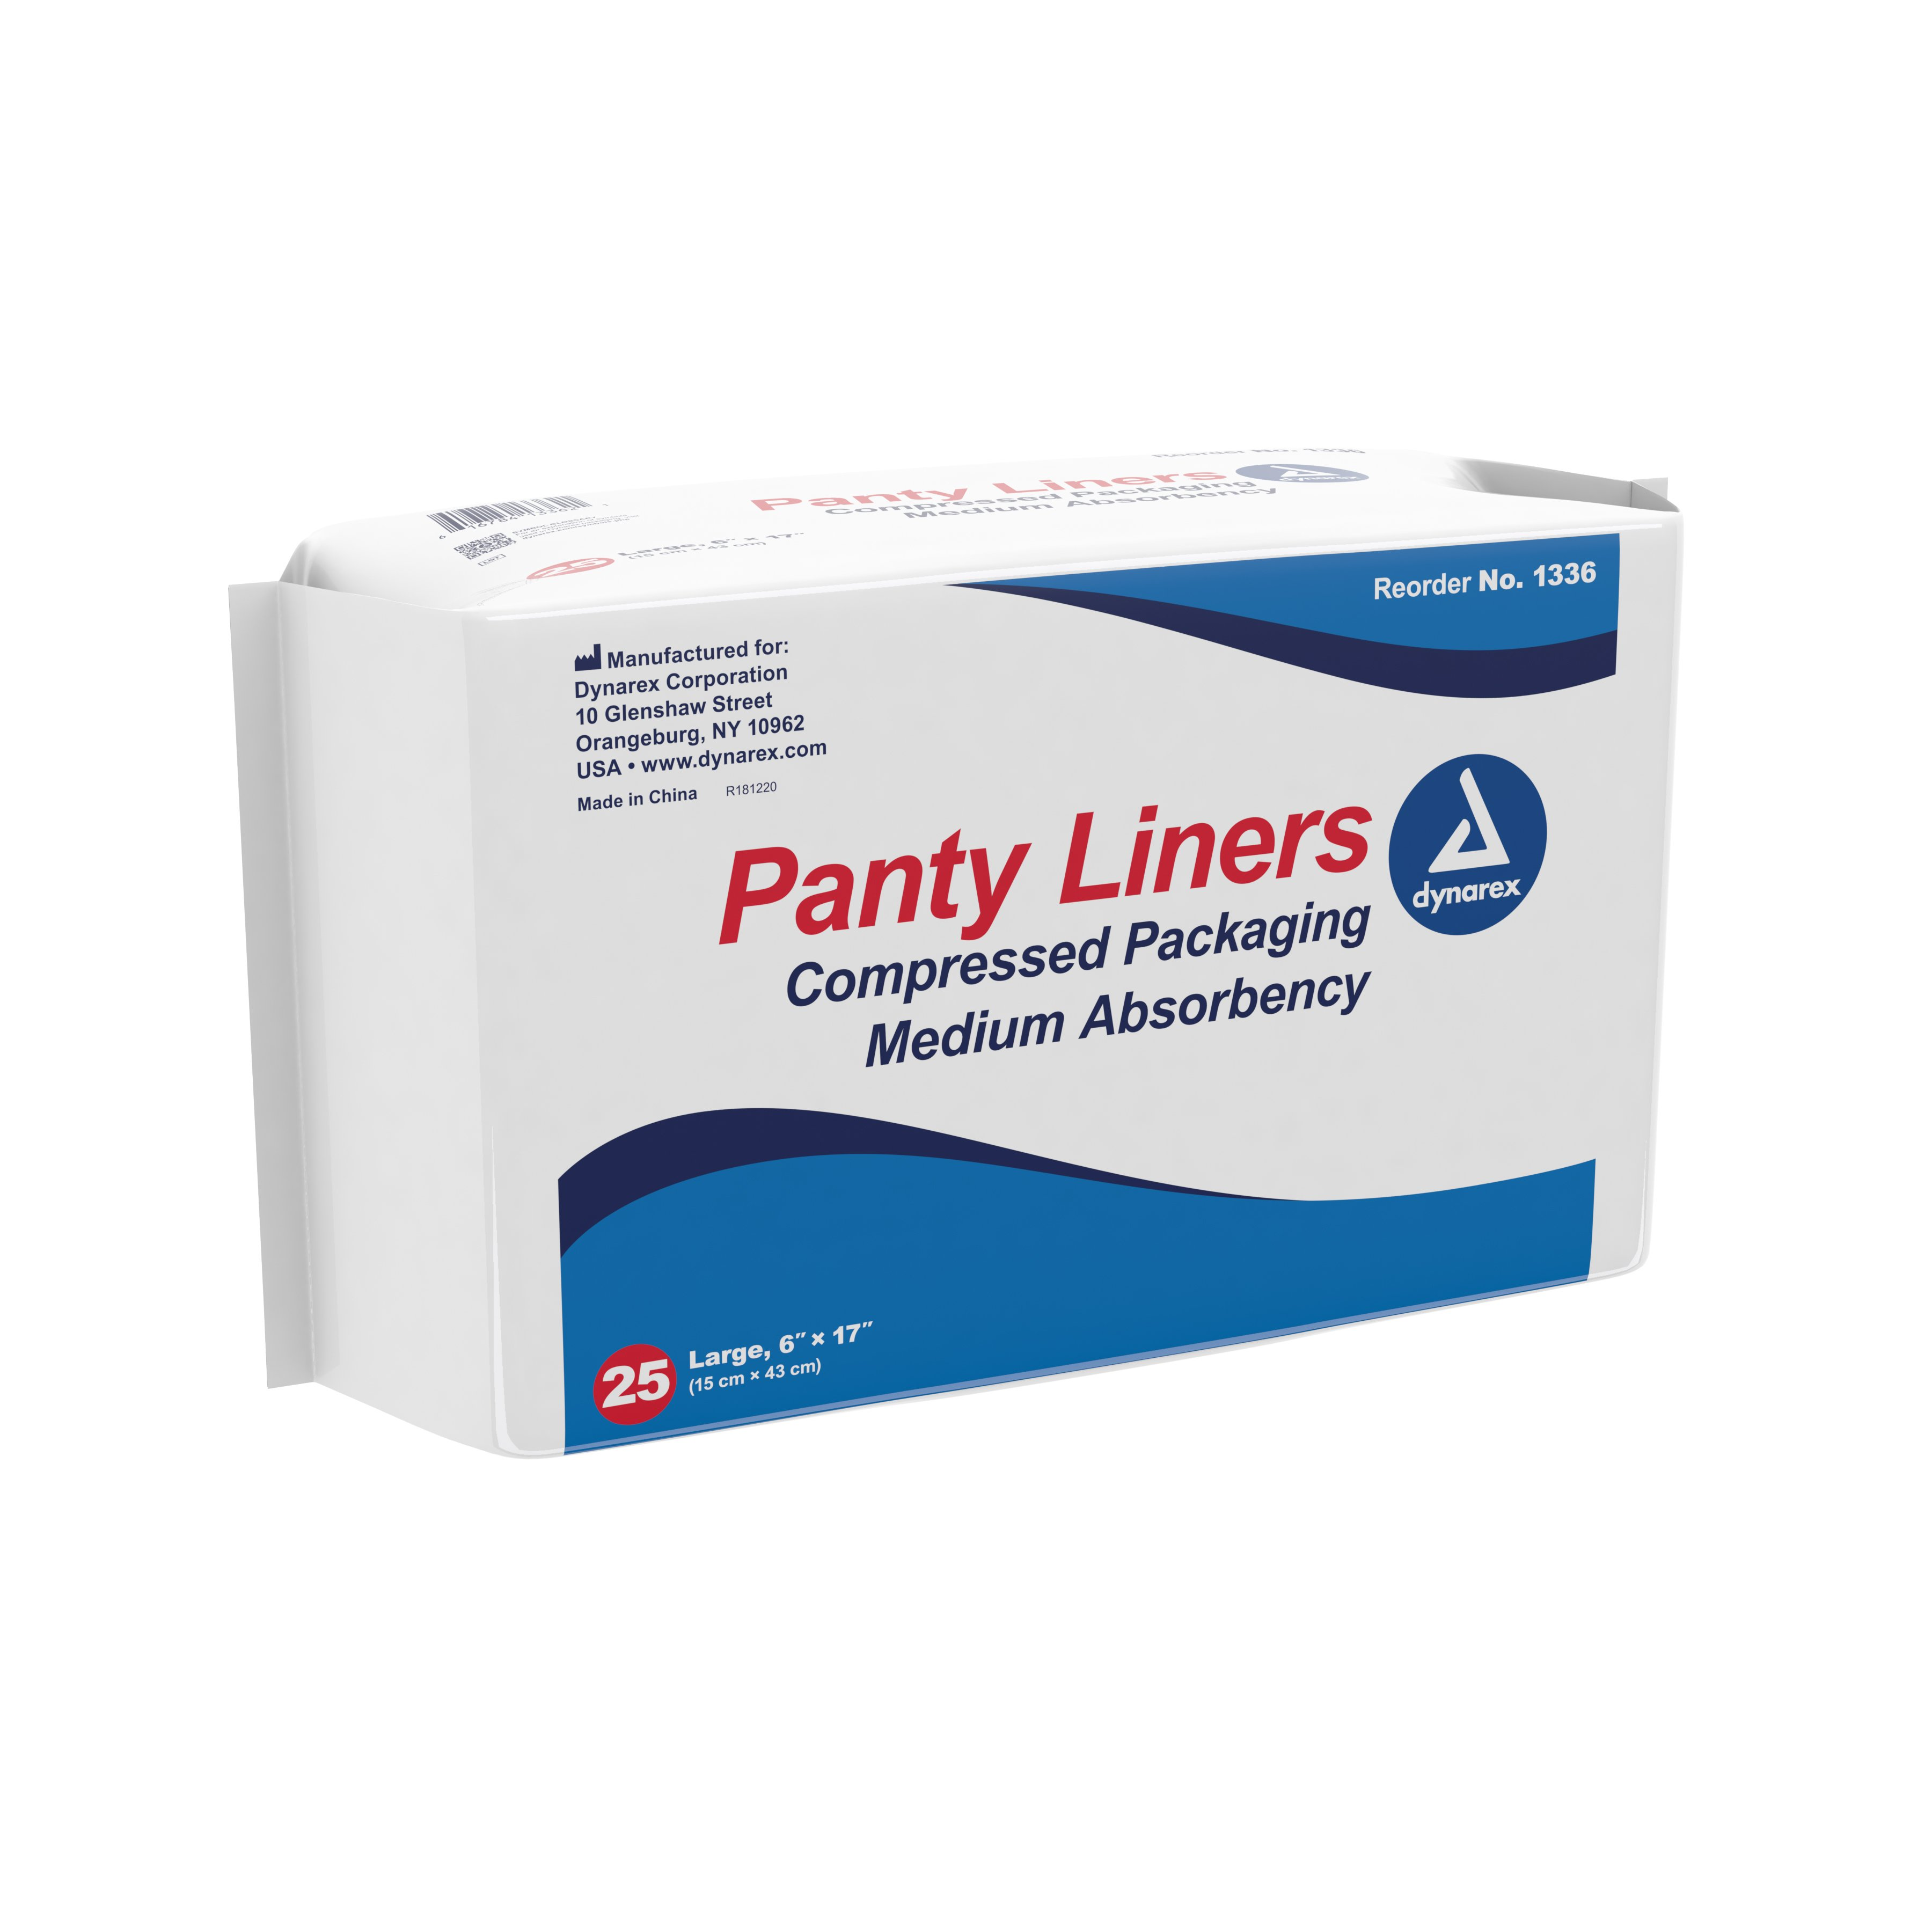 """Dynarex Panty Liners, Moderate Absorbency, 1336, 6 X 17"""" - Case of 250 (10 Packs)"""